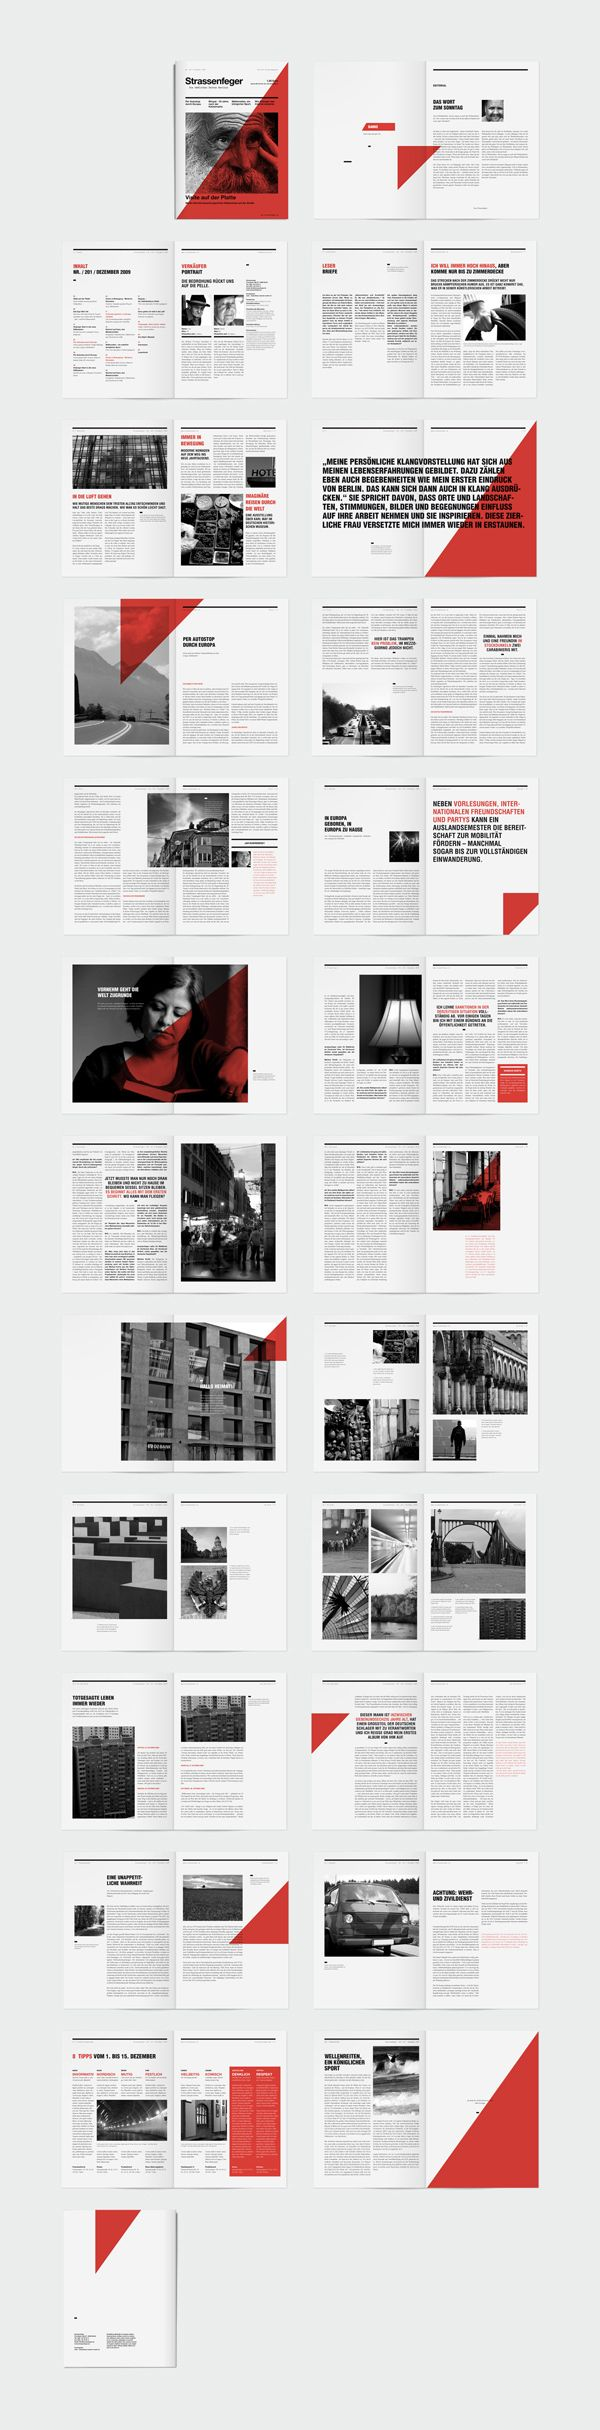 """The Strassenfeger is a Berlin-based Magazine sold by homeless people. I thought it would be fun to create an identity for them."" - Rene Bieder #identity #editorial"